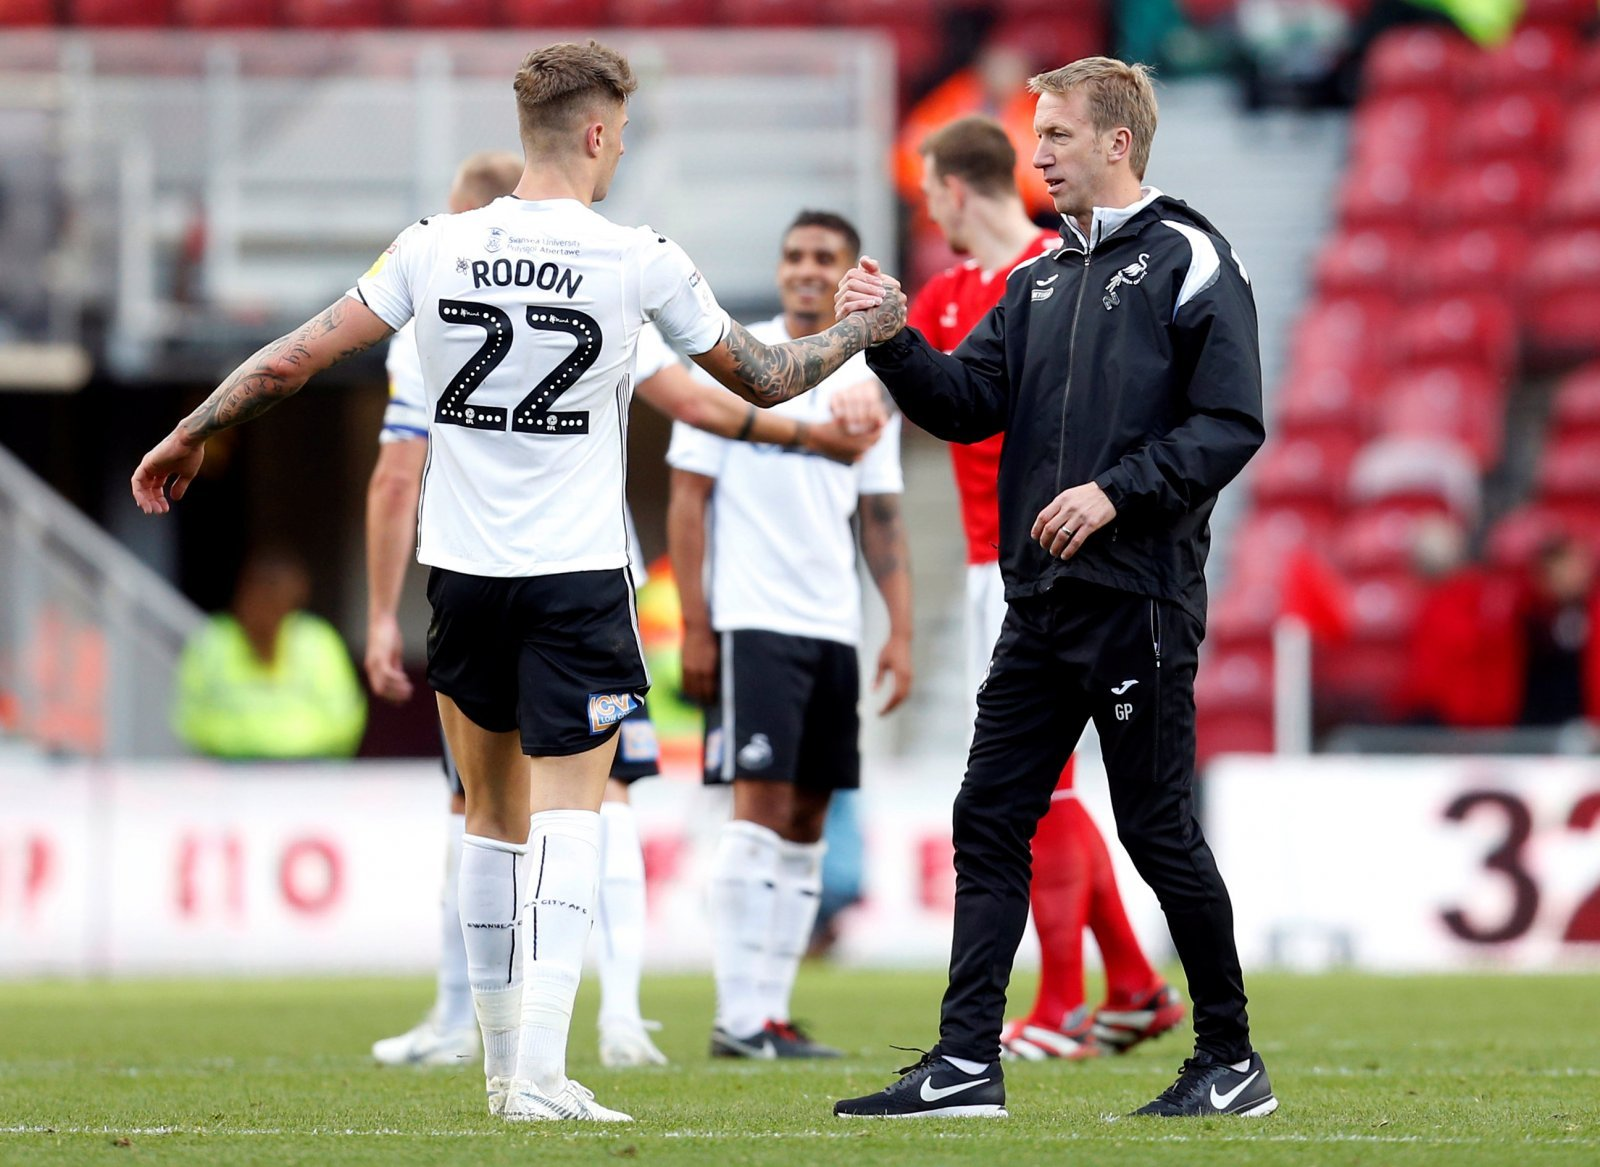 Joe Rodon would make a terrific signing for Leeds in January